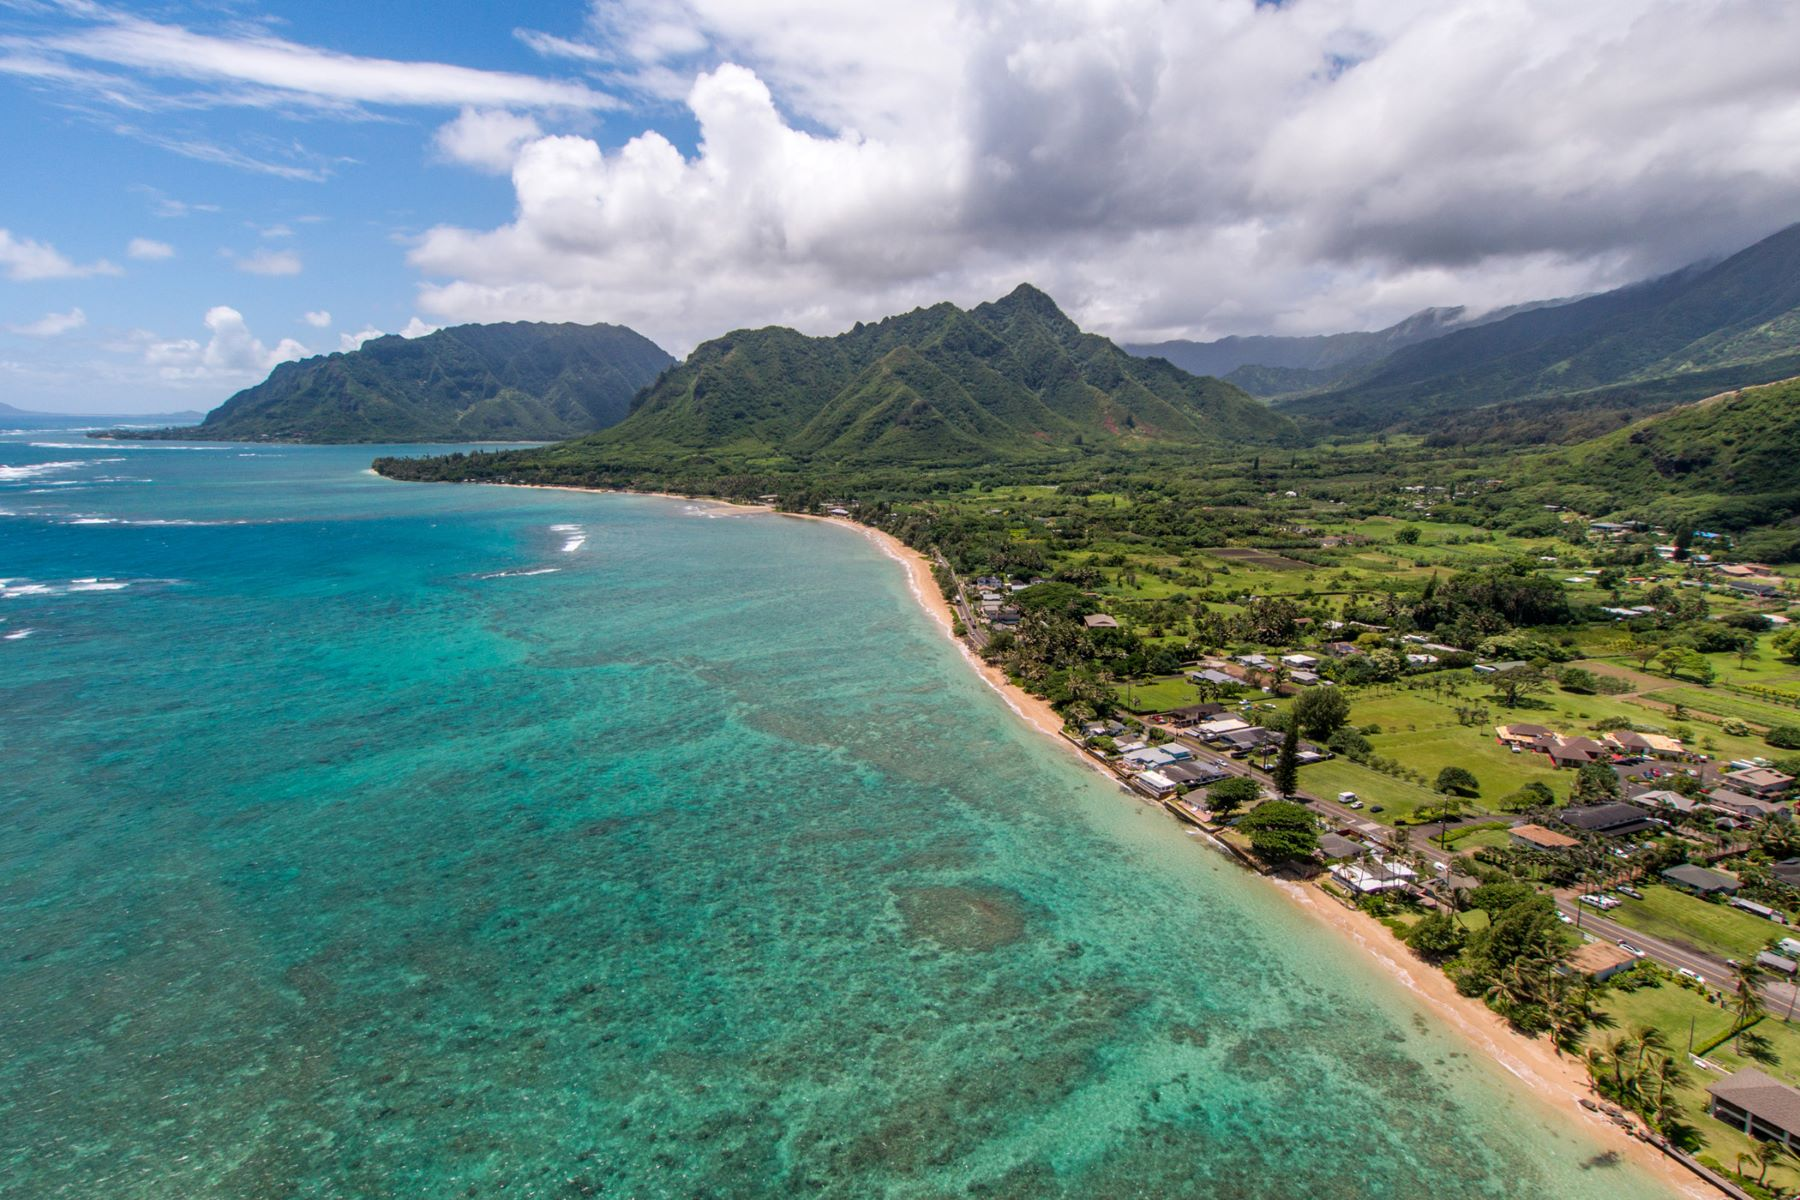 Land for Sale at Vacant Land, Hauula, Kaneohe 53-000 Kamehameha Hwy #009 and #010 Hauula, Hawaii 96717 United States